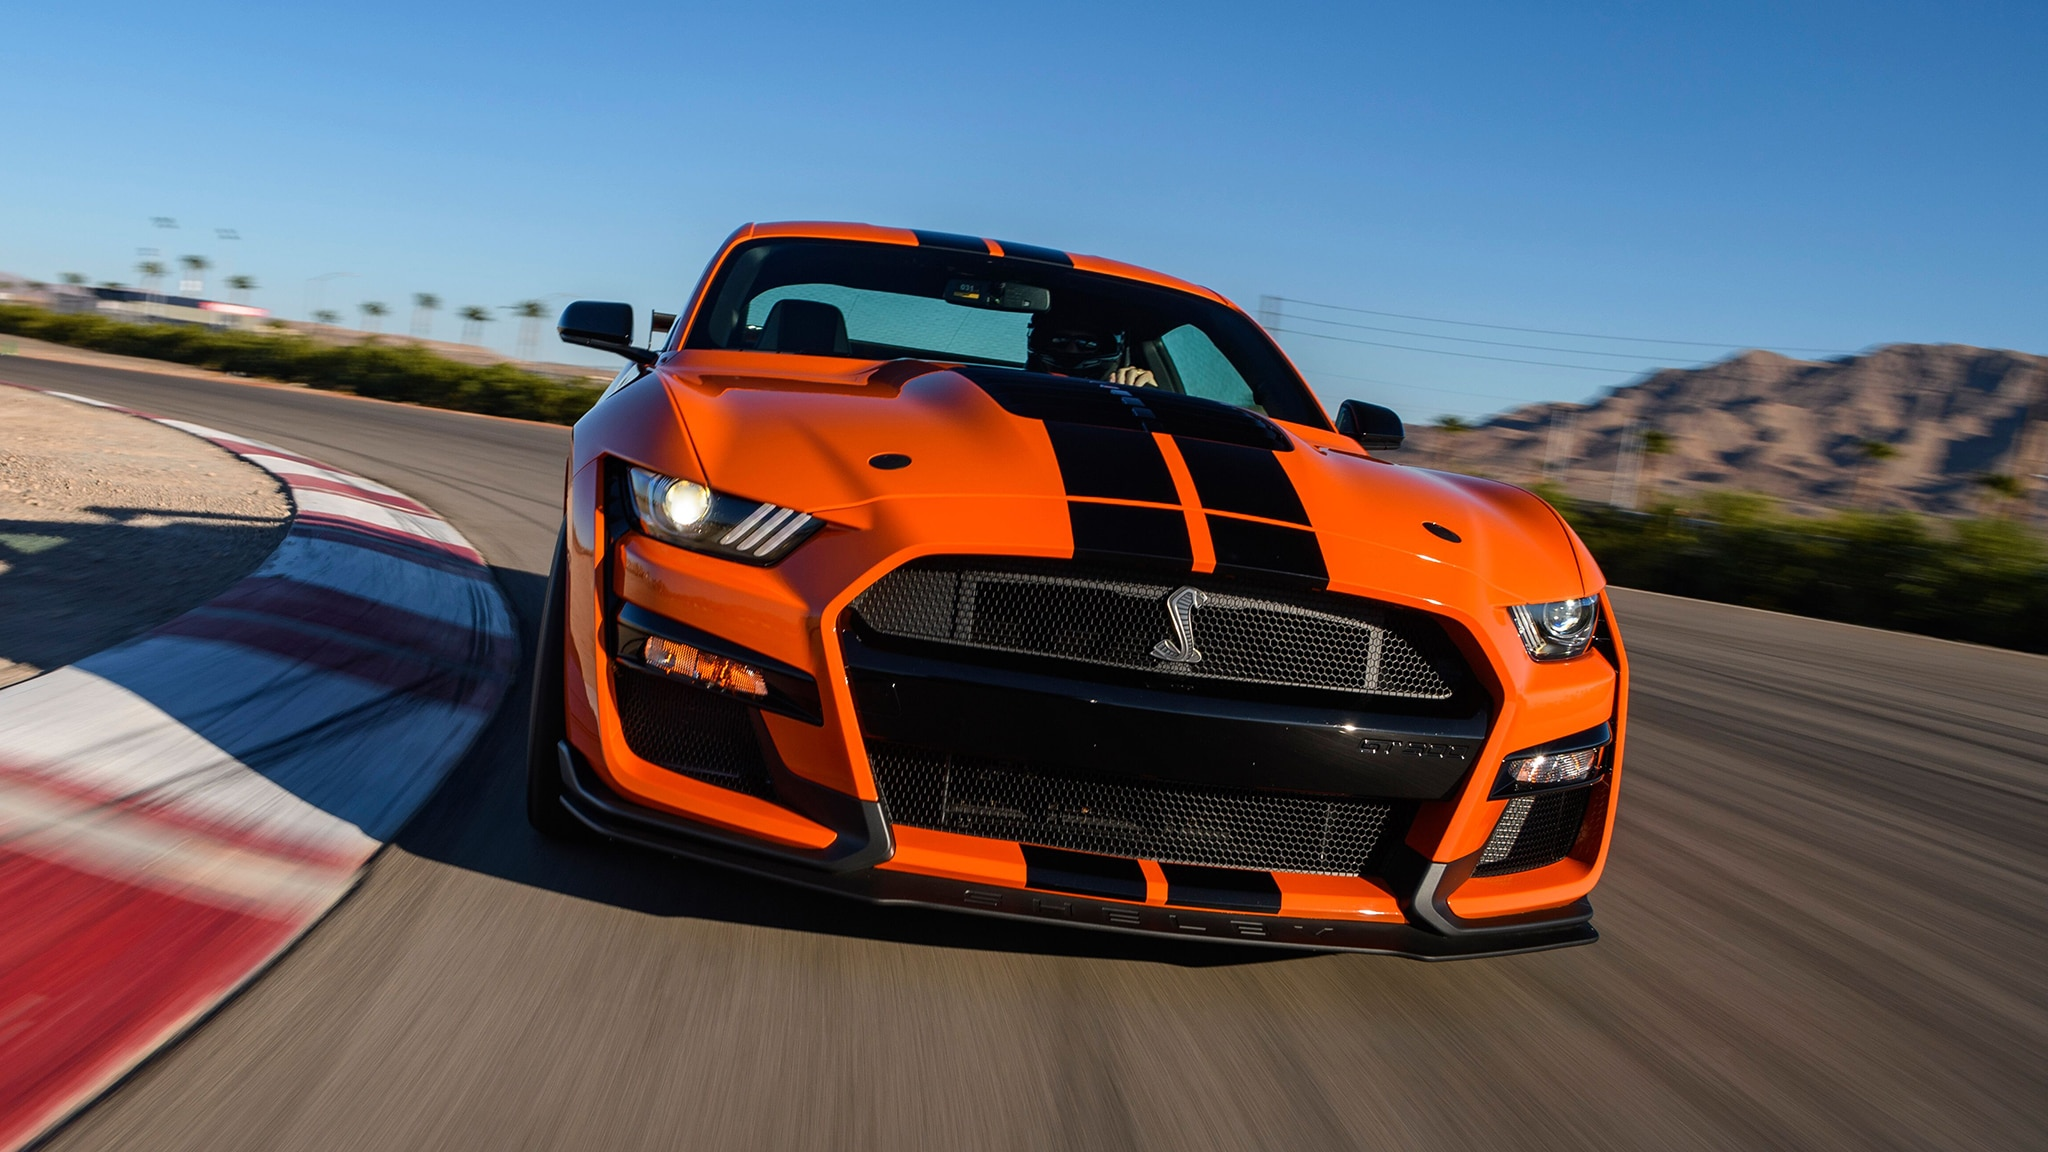 2020 Ford Mustang Shelby GT500 First Drive Review: Wow ...